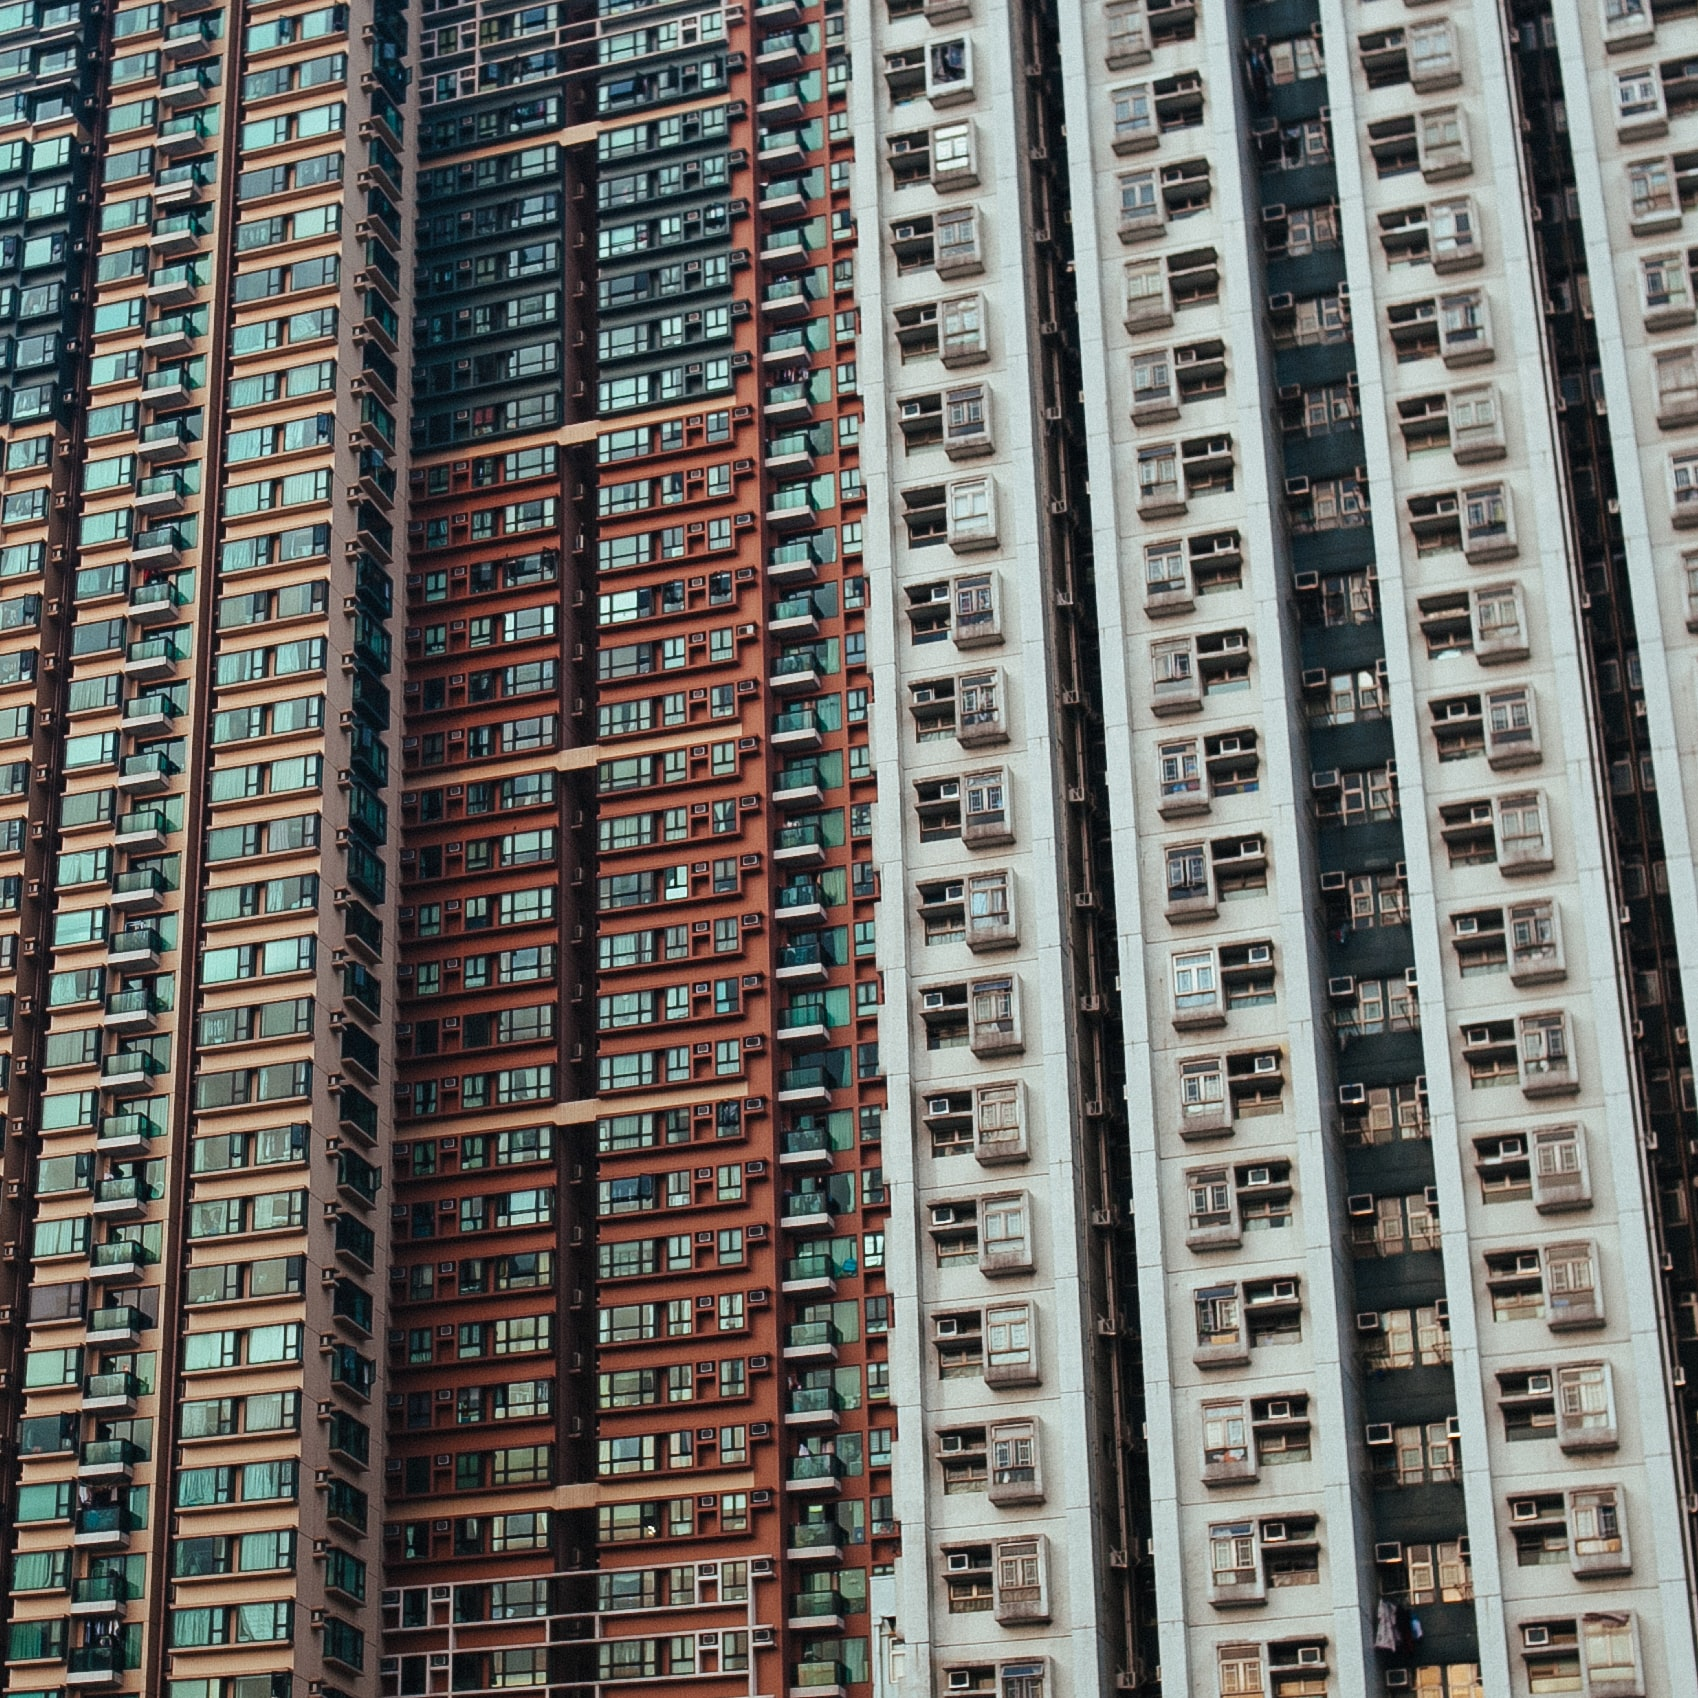 Long shot of multi-colored high rise apartment buildings with windows